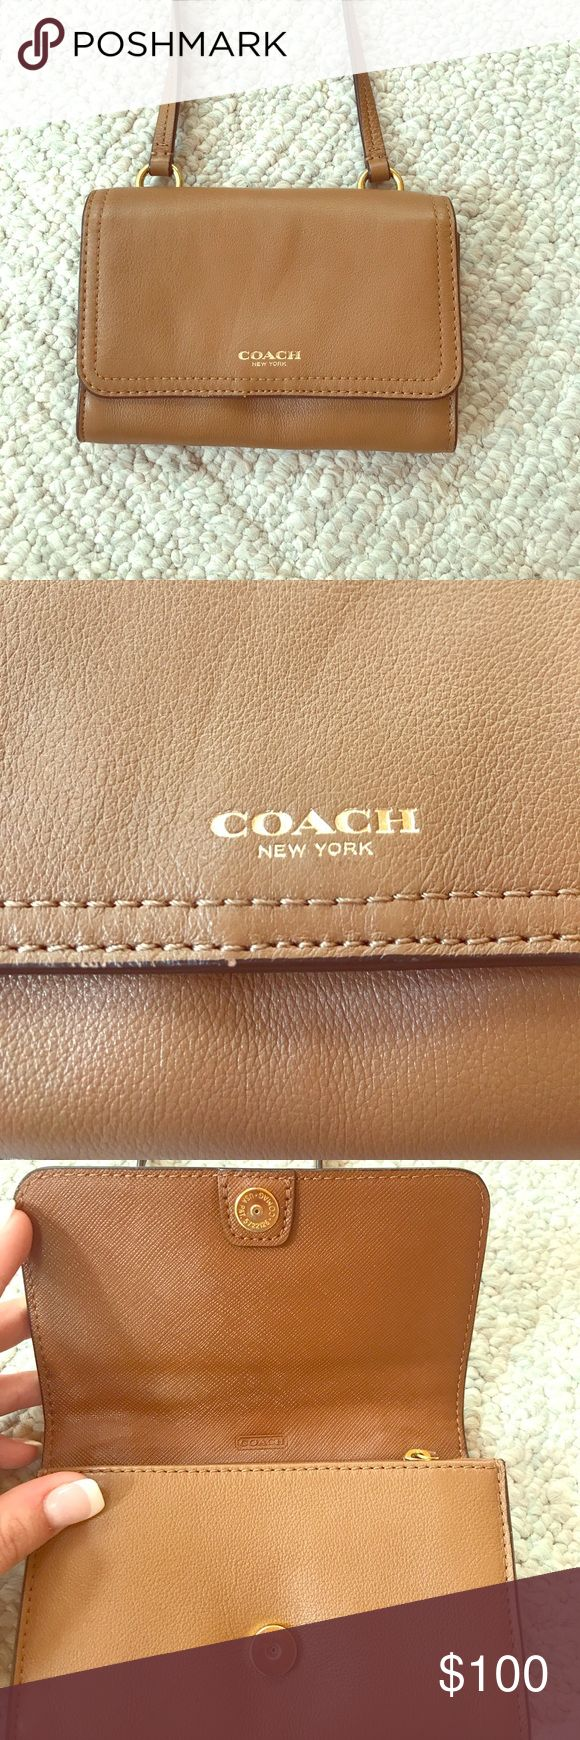 Gently used coach cross body purse Very gently used with no visible signs of wear. Bought this from the coach store and used it for a week straight on a trip to France. Haven't used it since. Leather is broken in but no scratches or marks are evident.  Long strap for crossbody handling and lots of little pockets. Coach Bags Crossbody Bags